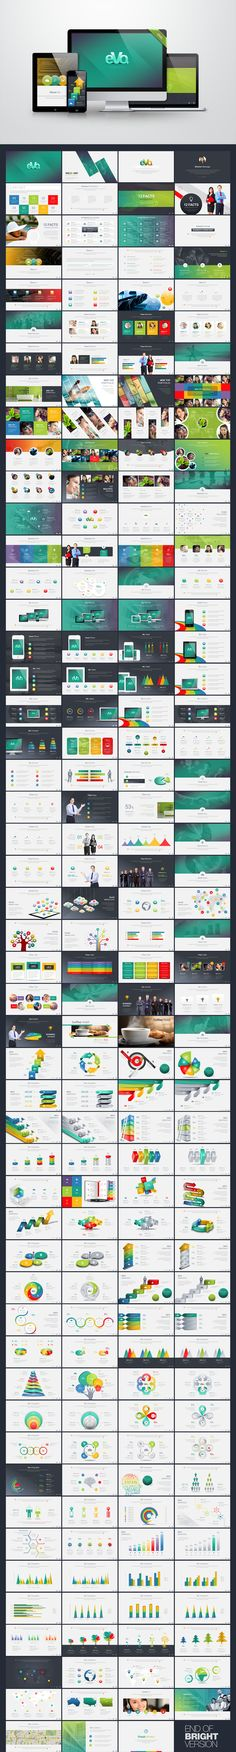 Related image 3d infographics Pinterest Infographics - software business plan template